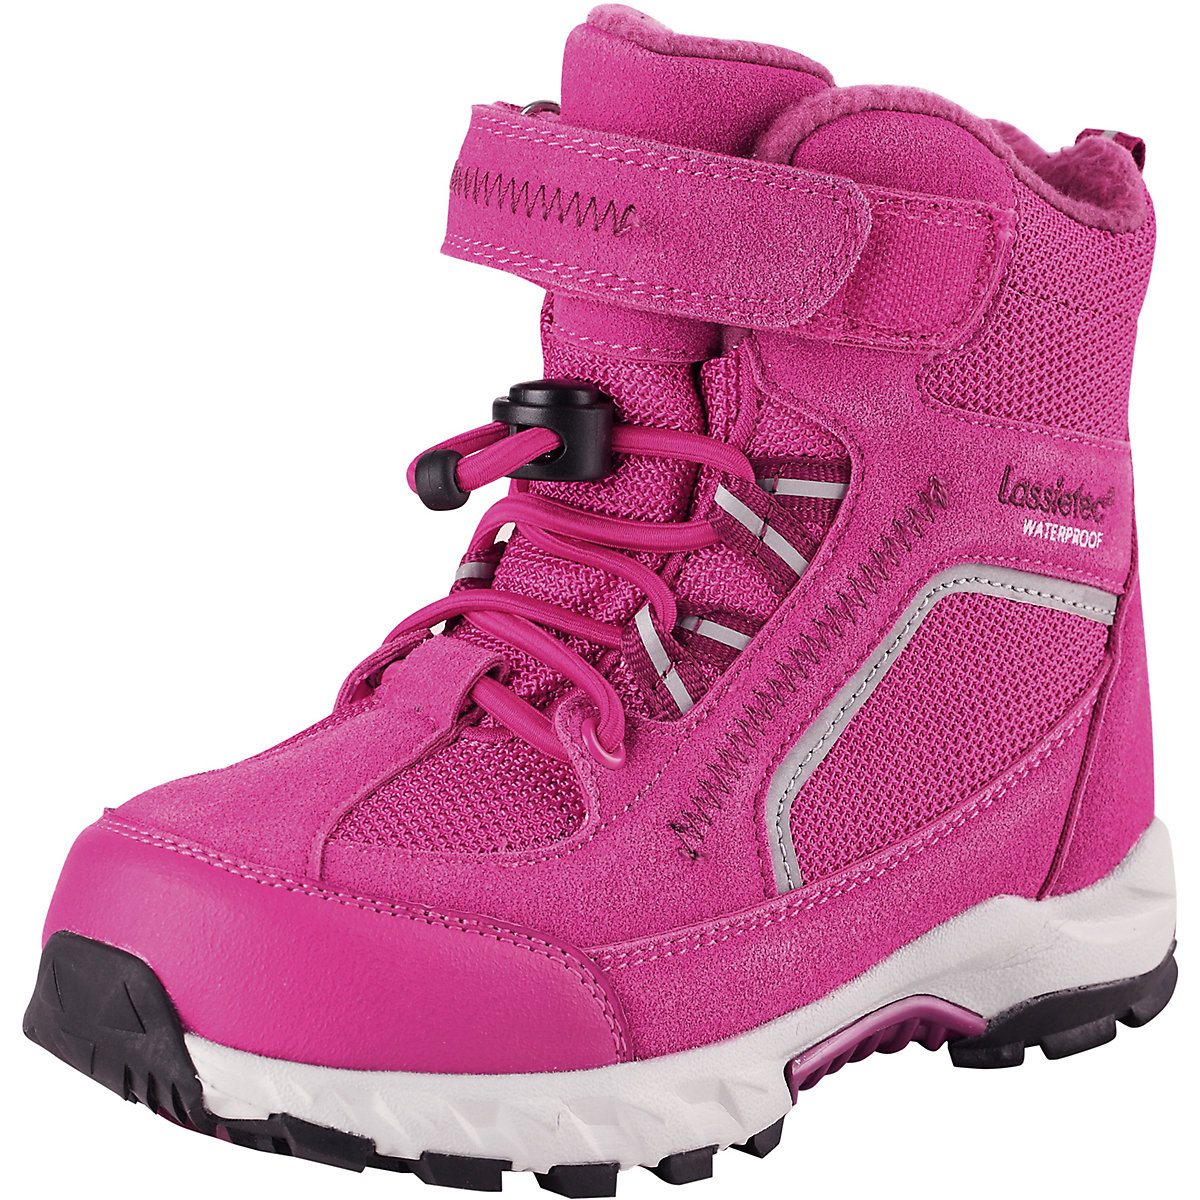 Boots LASSIE for girls 8623239 Valenki Uggi Winter shoes Children Kids boots demar for boys and girls 6835179 valenki uggi winter baby kids children shoes